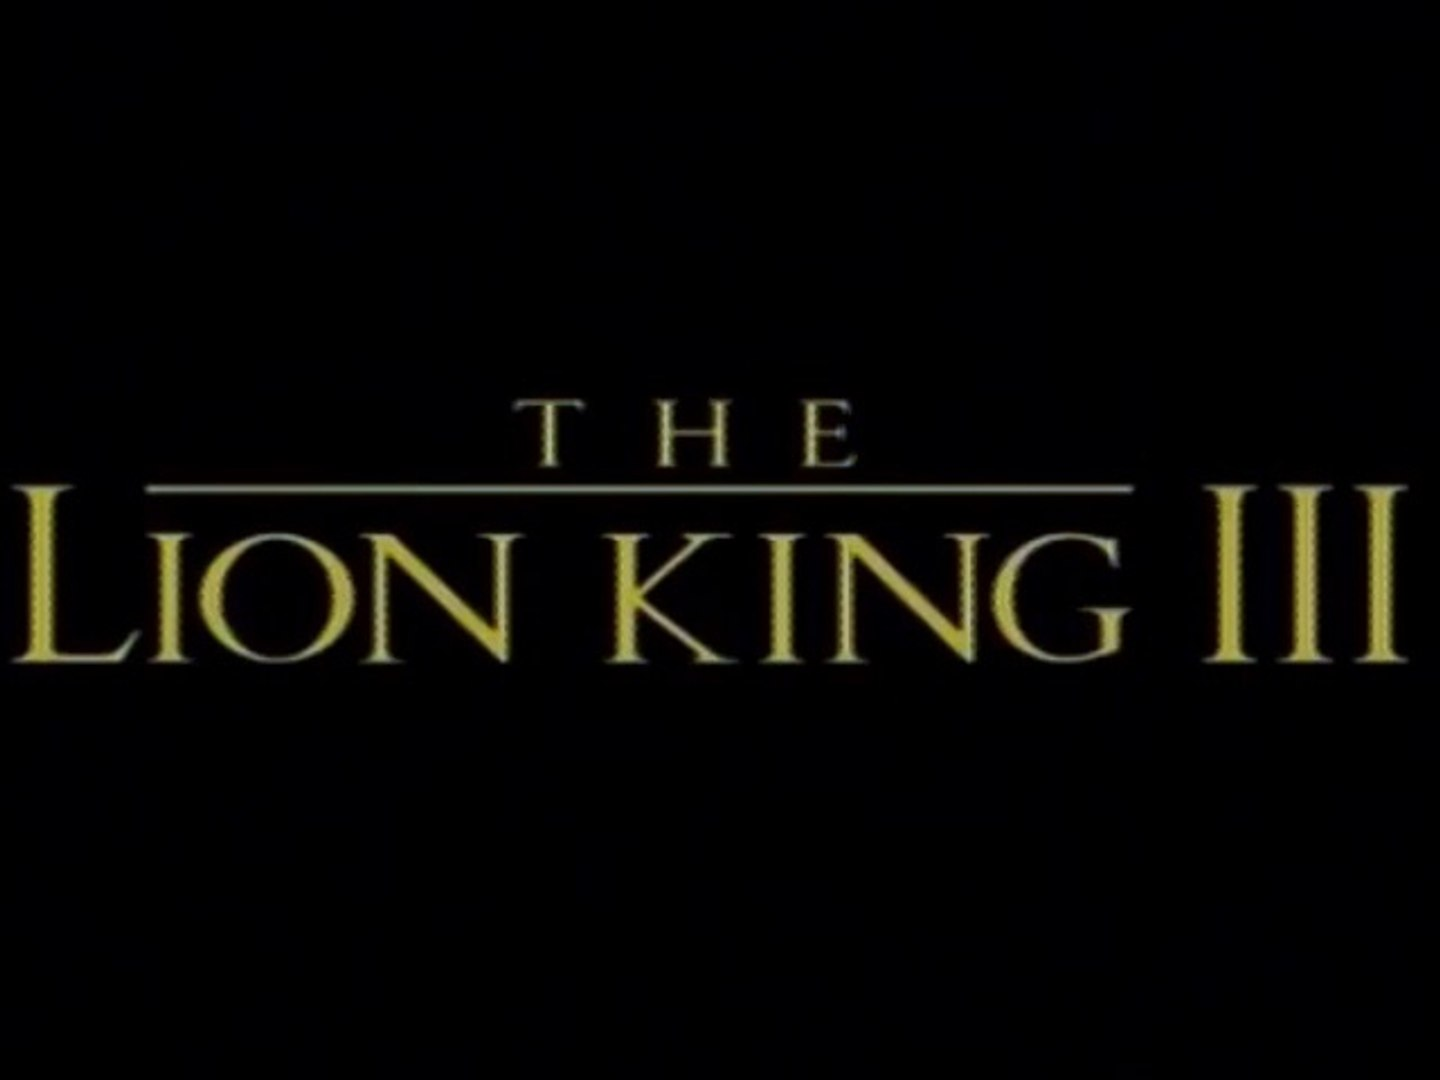 The Lion King 1 2000 Vhs Dvd Trailer Video Dailymotion